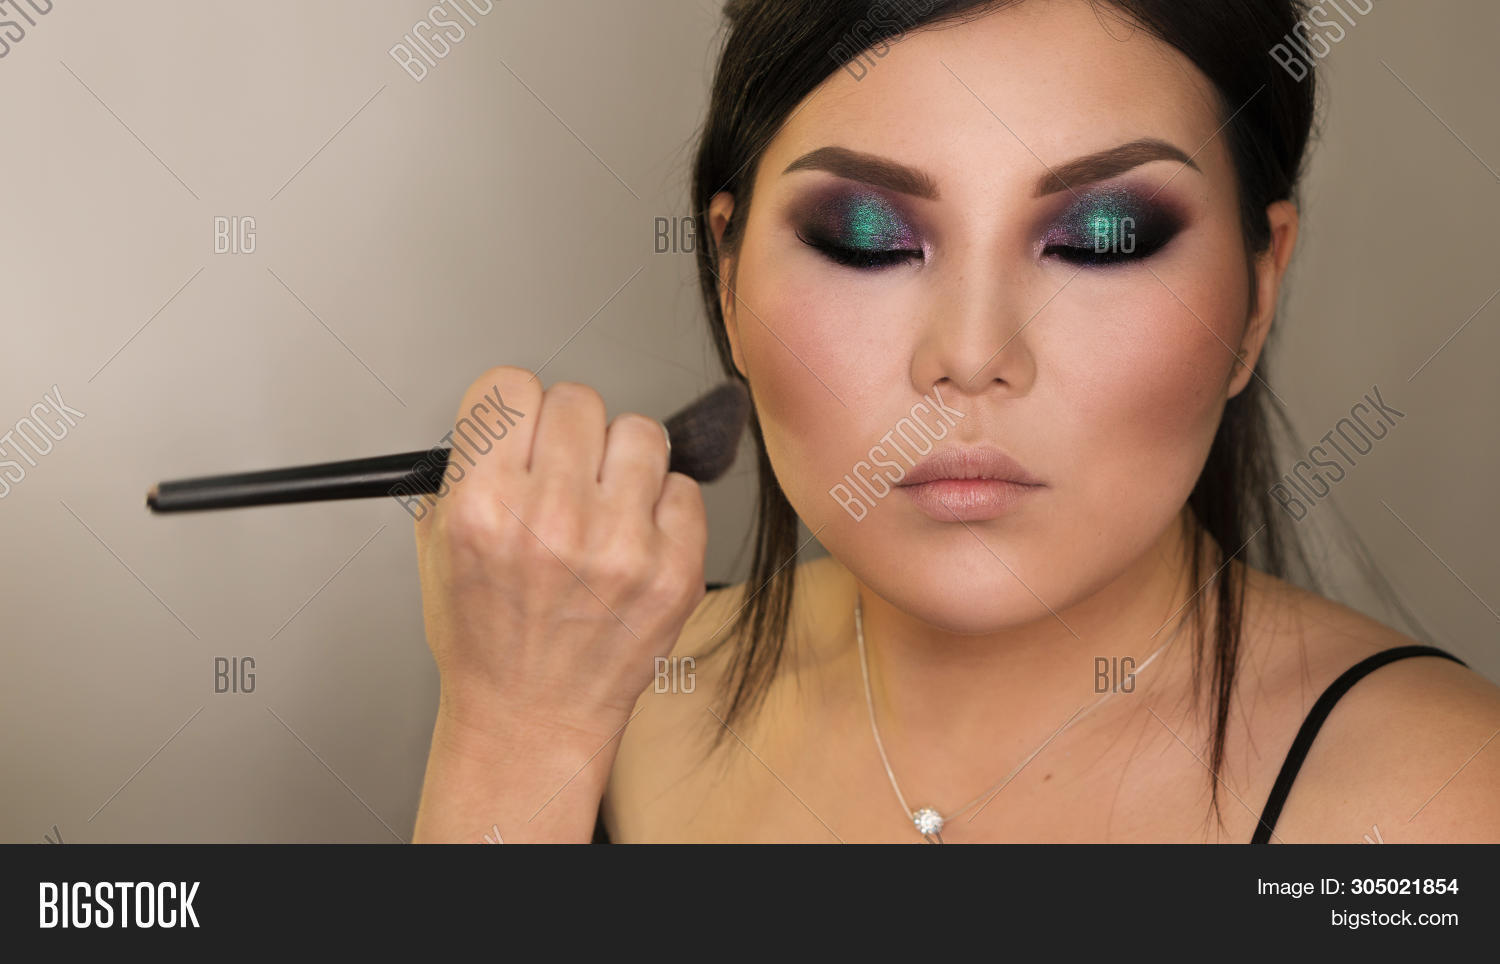 Makeup Artist Working Image Photo